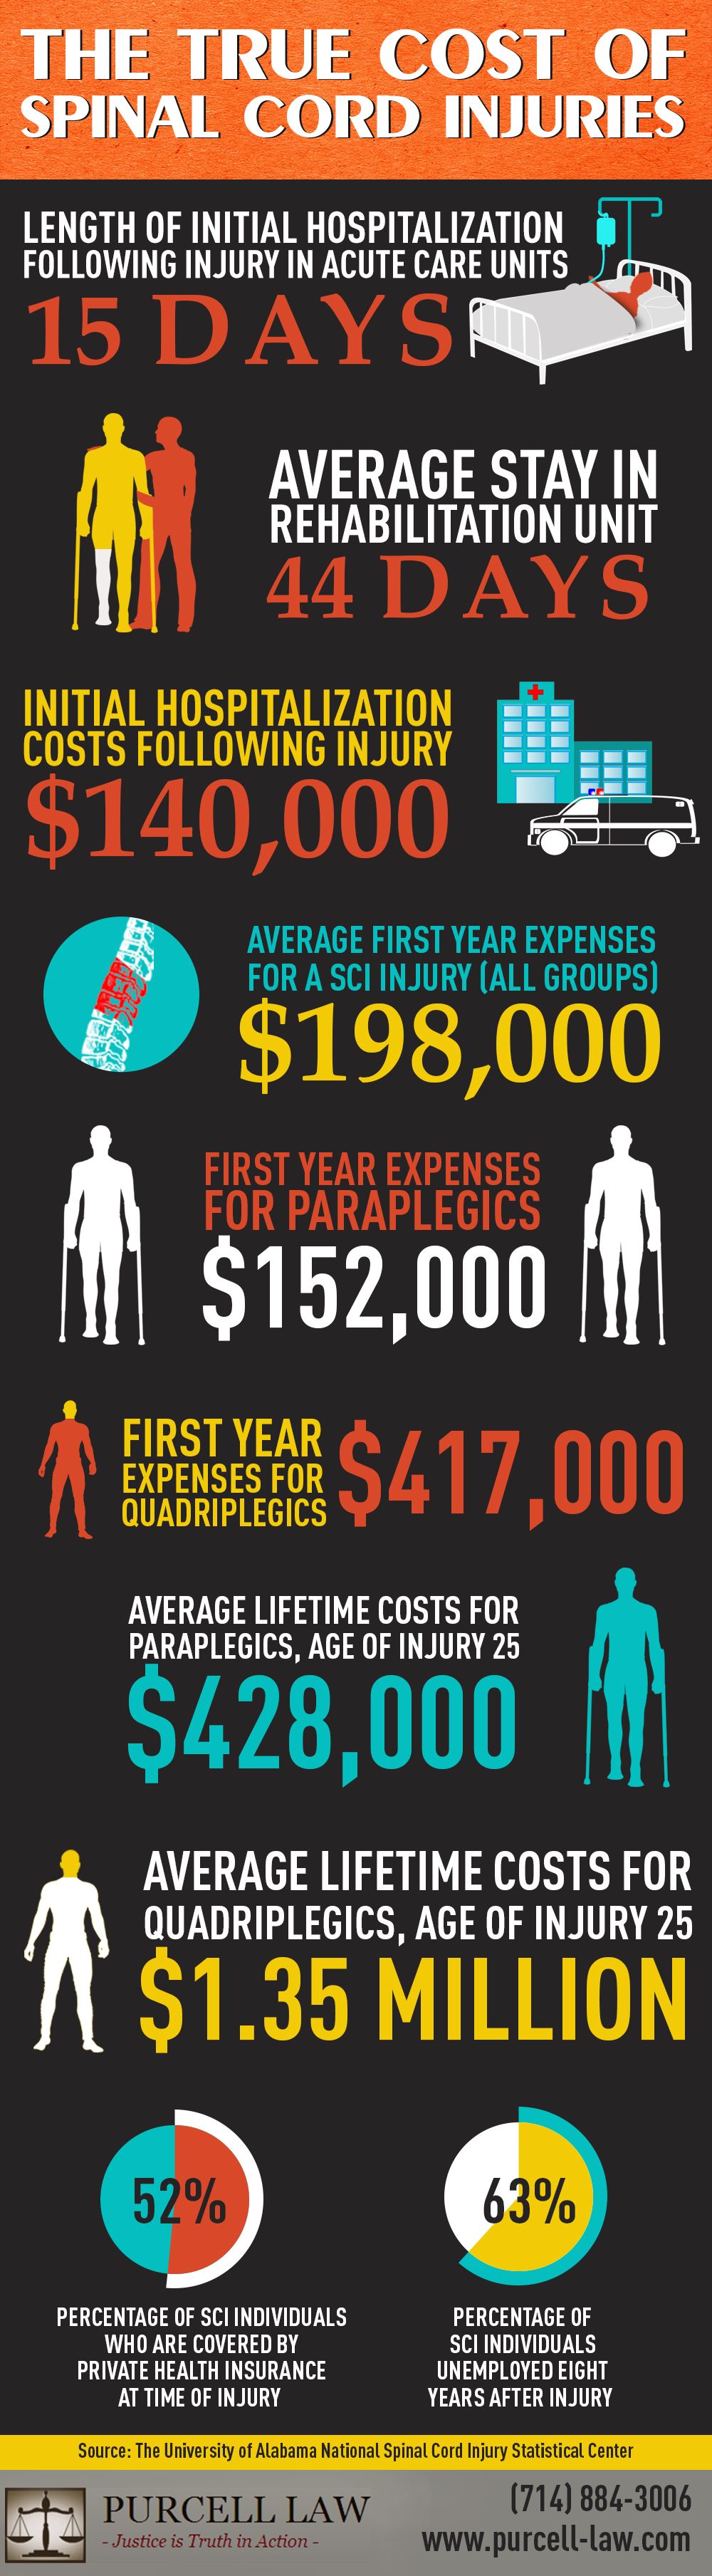 THE TRUE COST OF SPINAL CORD INJURIES